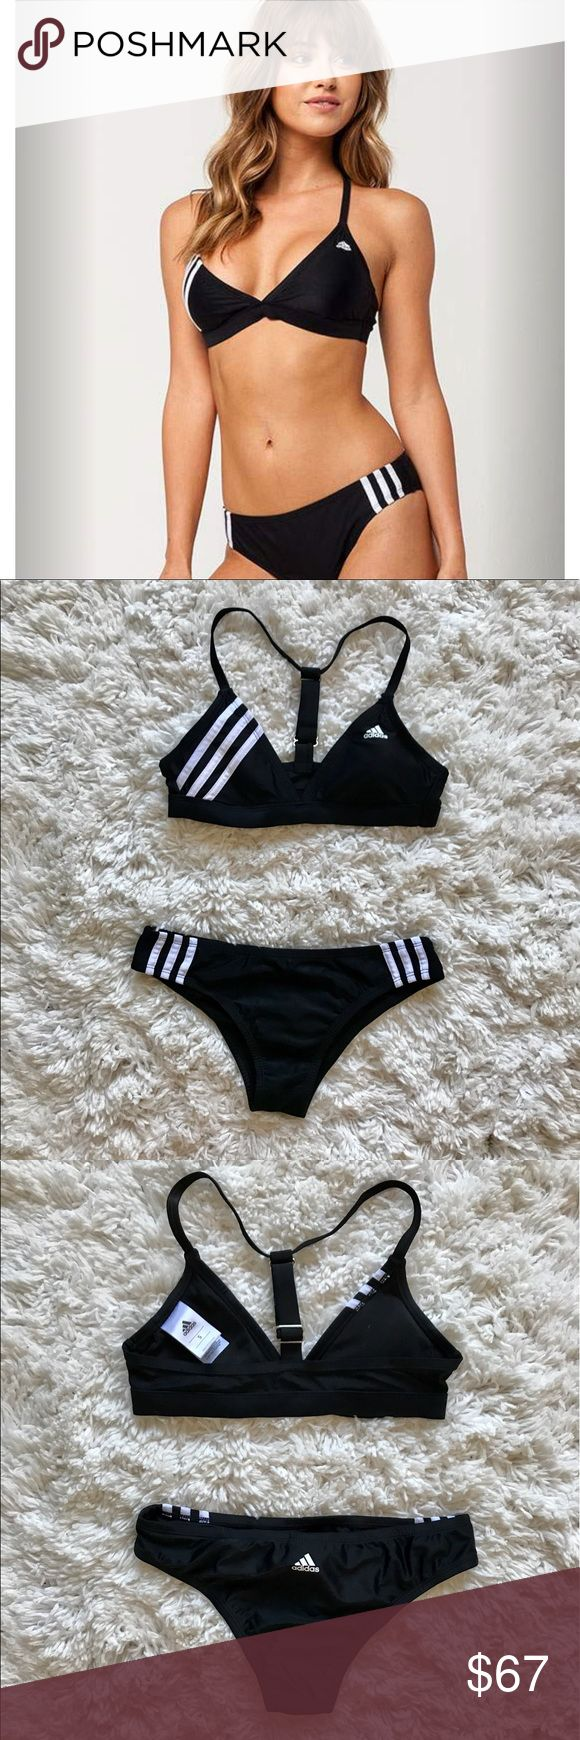 NWOT Black ADIDAS Swimsuit This trendy and sporty two-piece will be your new go to for summer. It has never been worn or washed. The suit itself is so new that it's still available on Tilly's website for $95 which is where I bought it. Both pieces are size small and will be sold together. Offers are always welcomed :) adidas Swim Bikinis